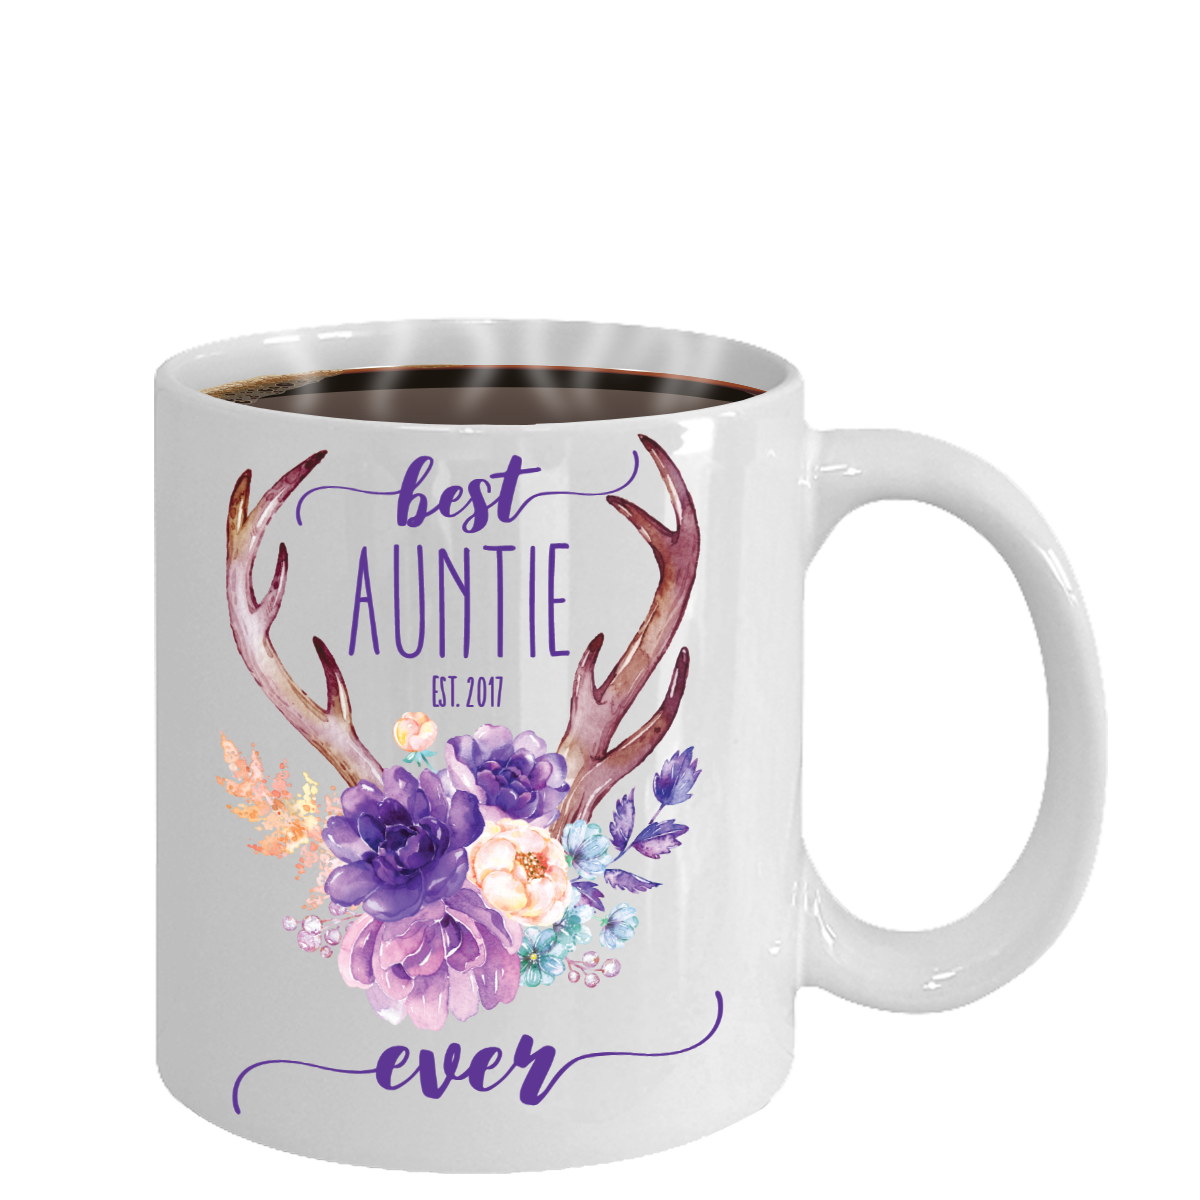 Best Auntie Ever Coffee Mug (Customizable/Personalized